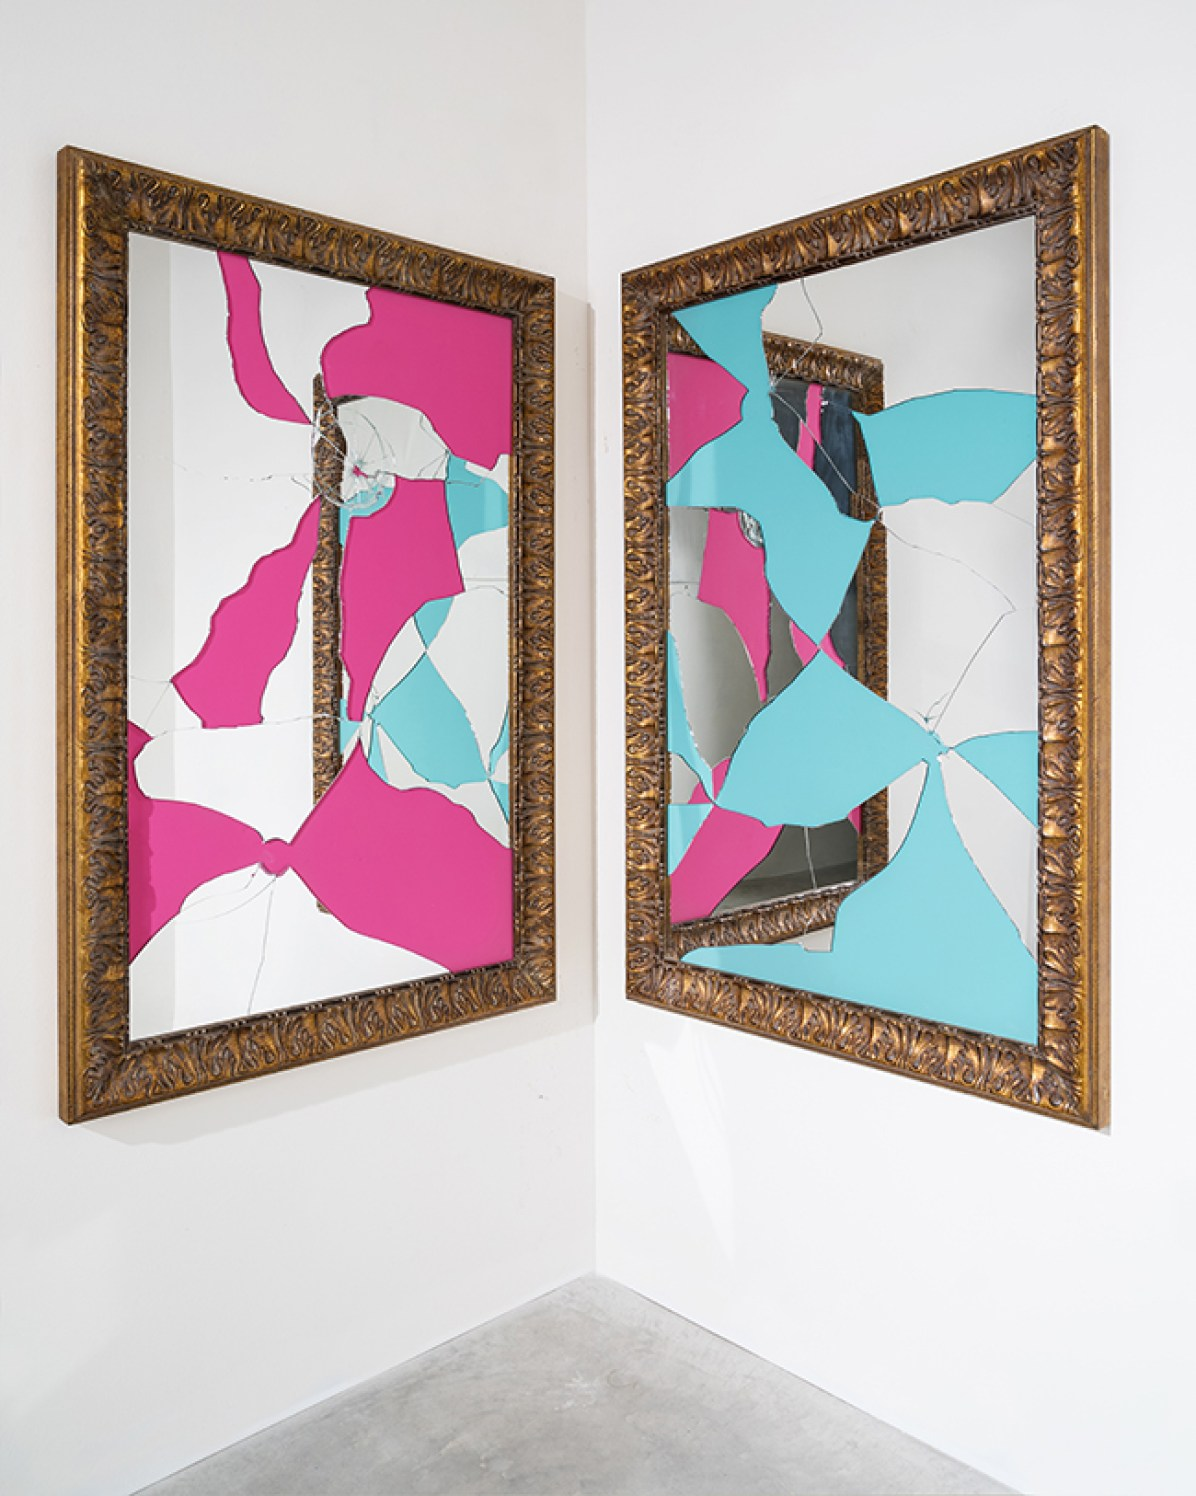 Michelangelo Pistoletto Two Less One colored 2014 specchio, legno dorato 2 elementi, 150 x 110 cm ciascuno 2014 mirror, gilded wood 2 elements, 150 x 110 cm each Courtesy: GALLERIA CONTINUA, San Gimignano / Beijing / Les Moulins / Habana Photo by: Ela Bialkowska